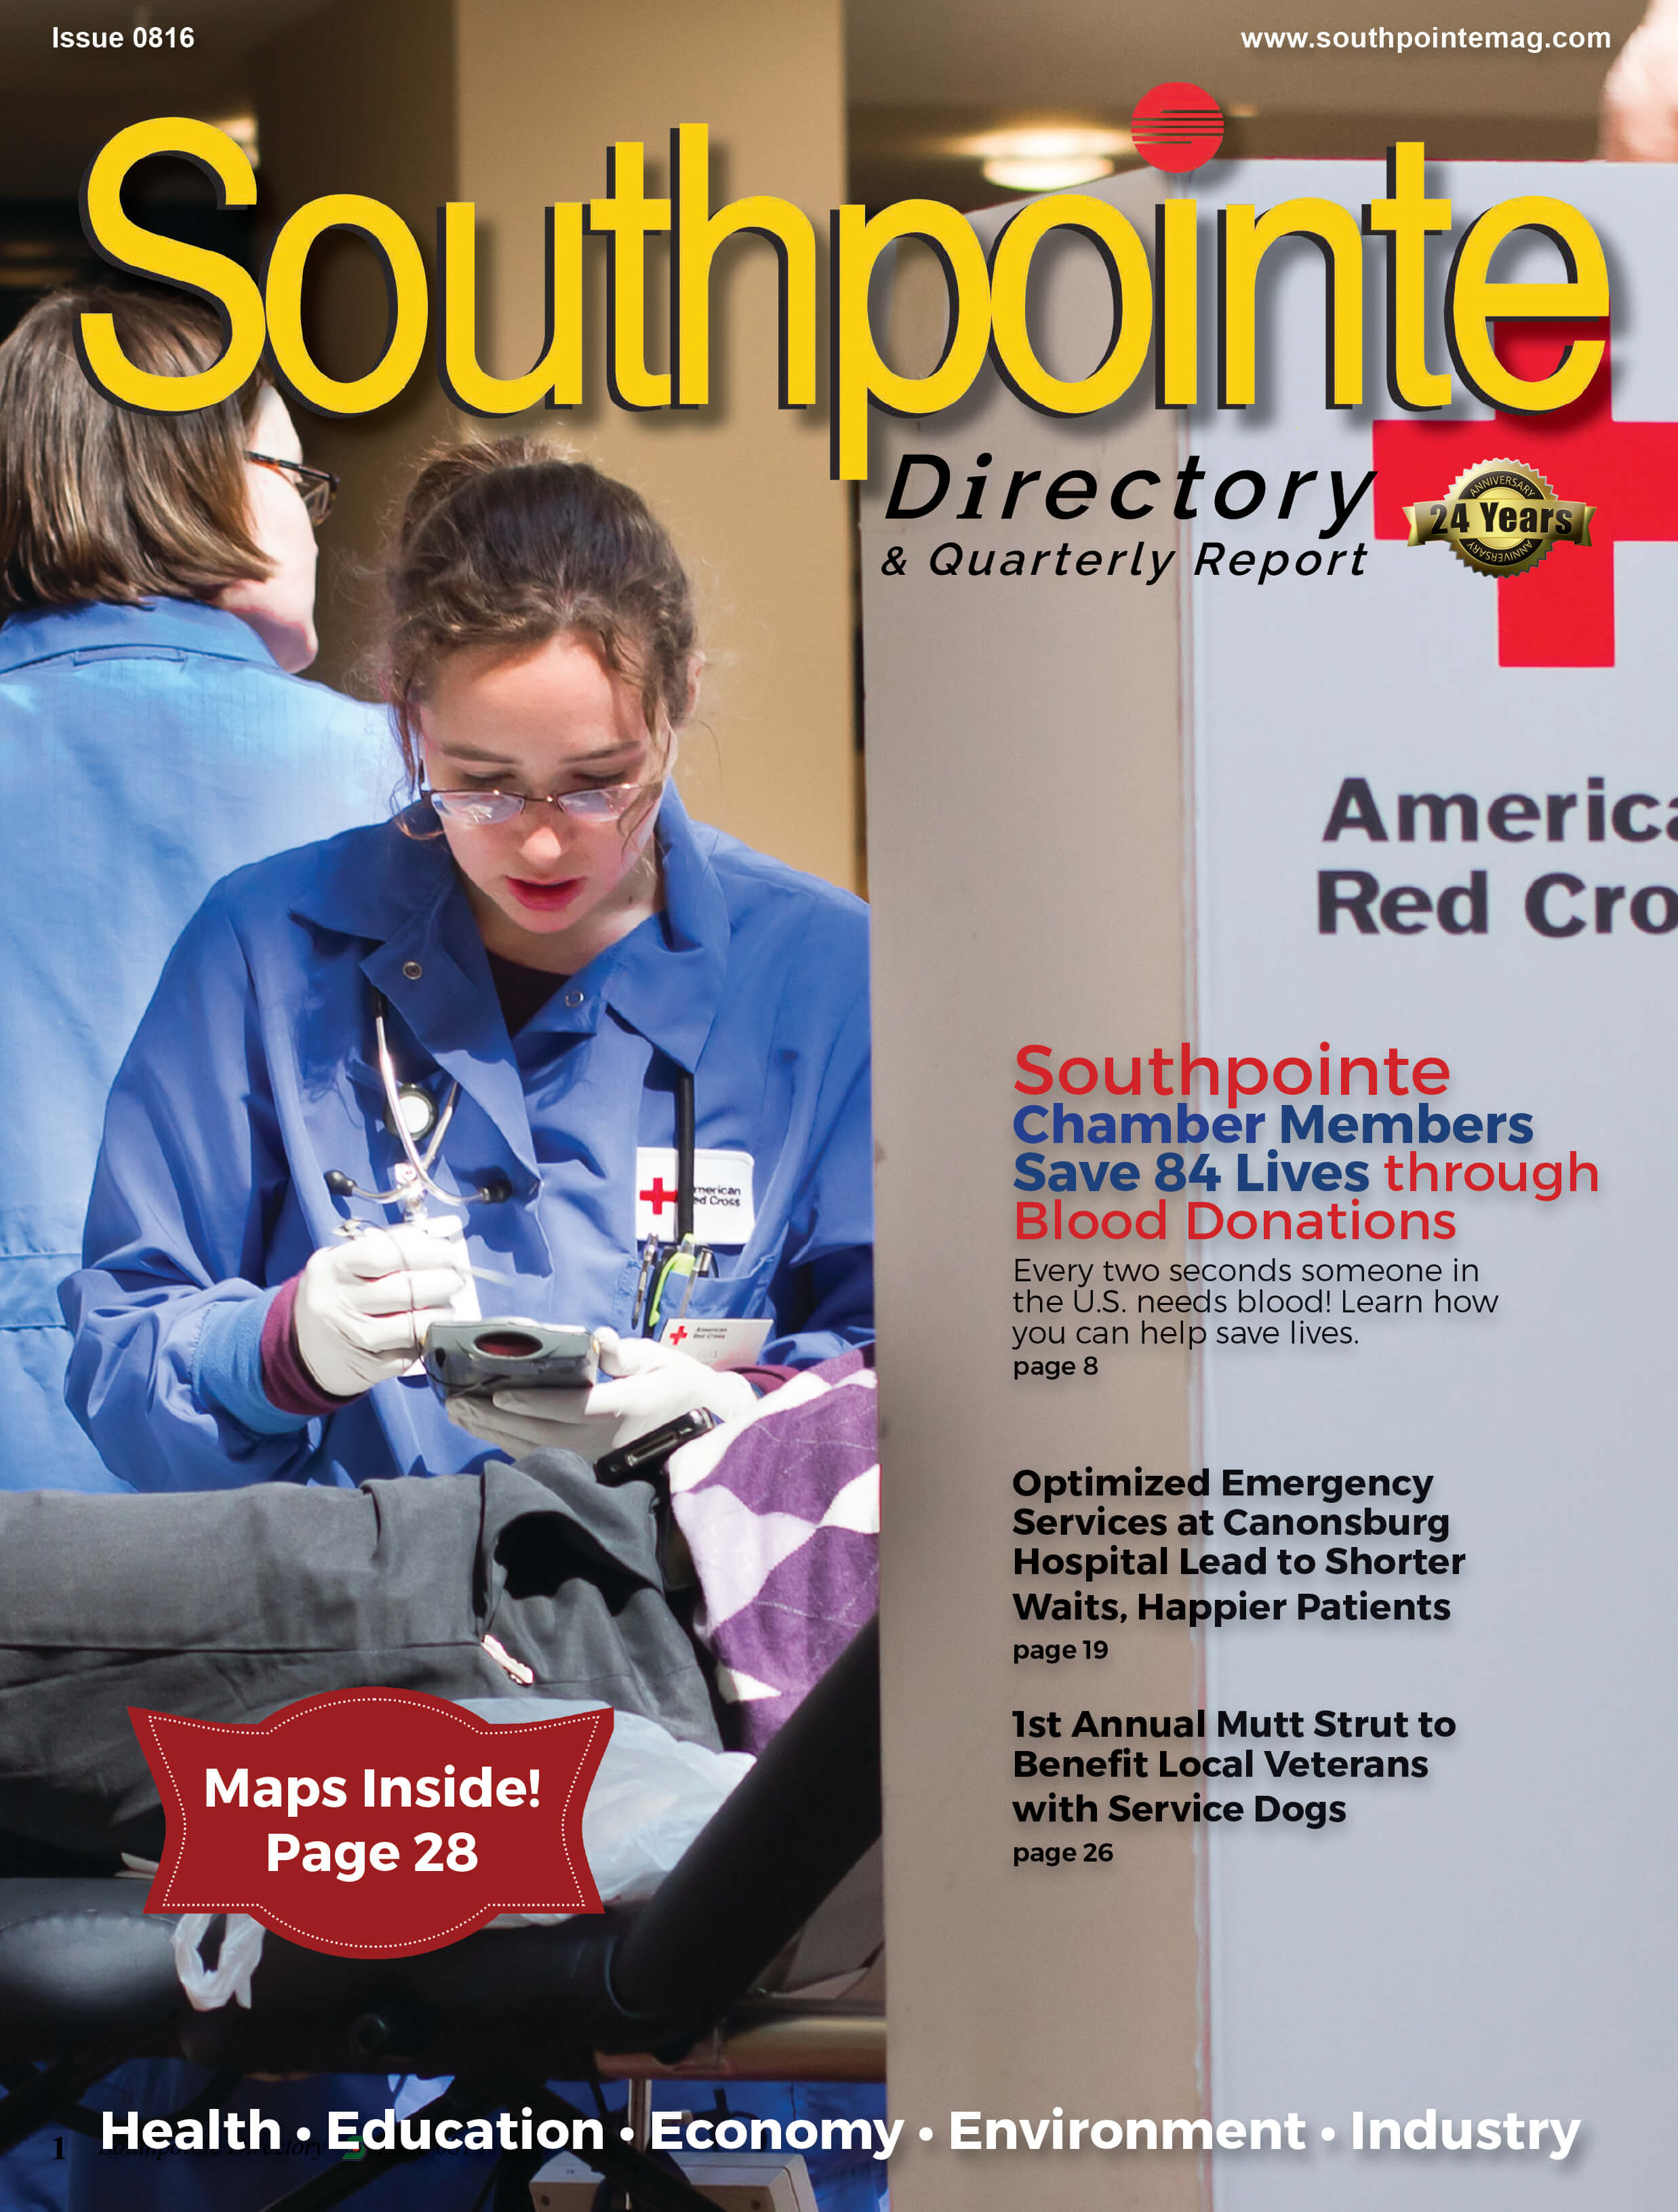 Southpointe Directory and Quarterly Report Summer 2016